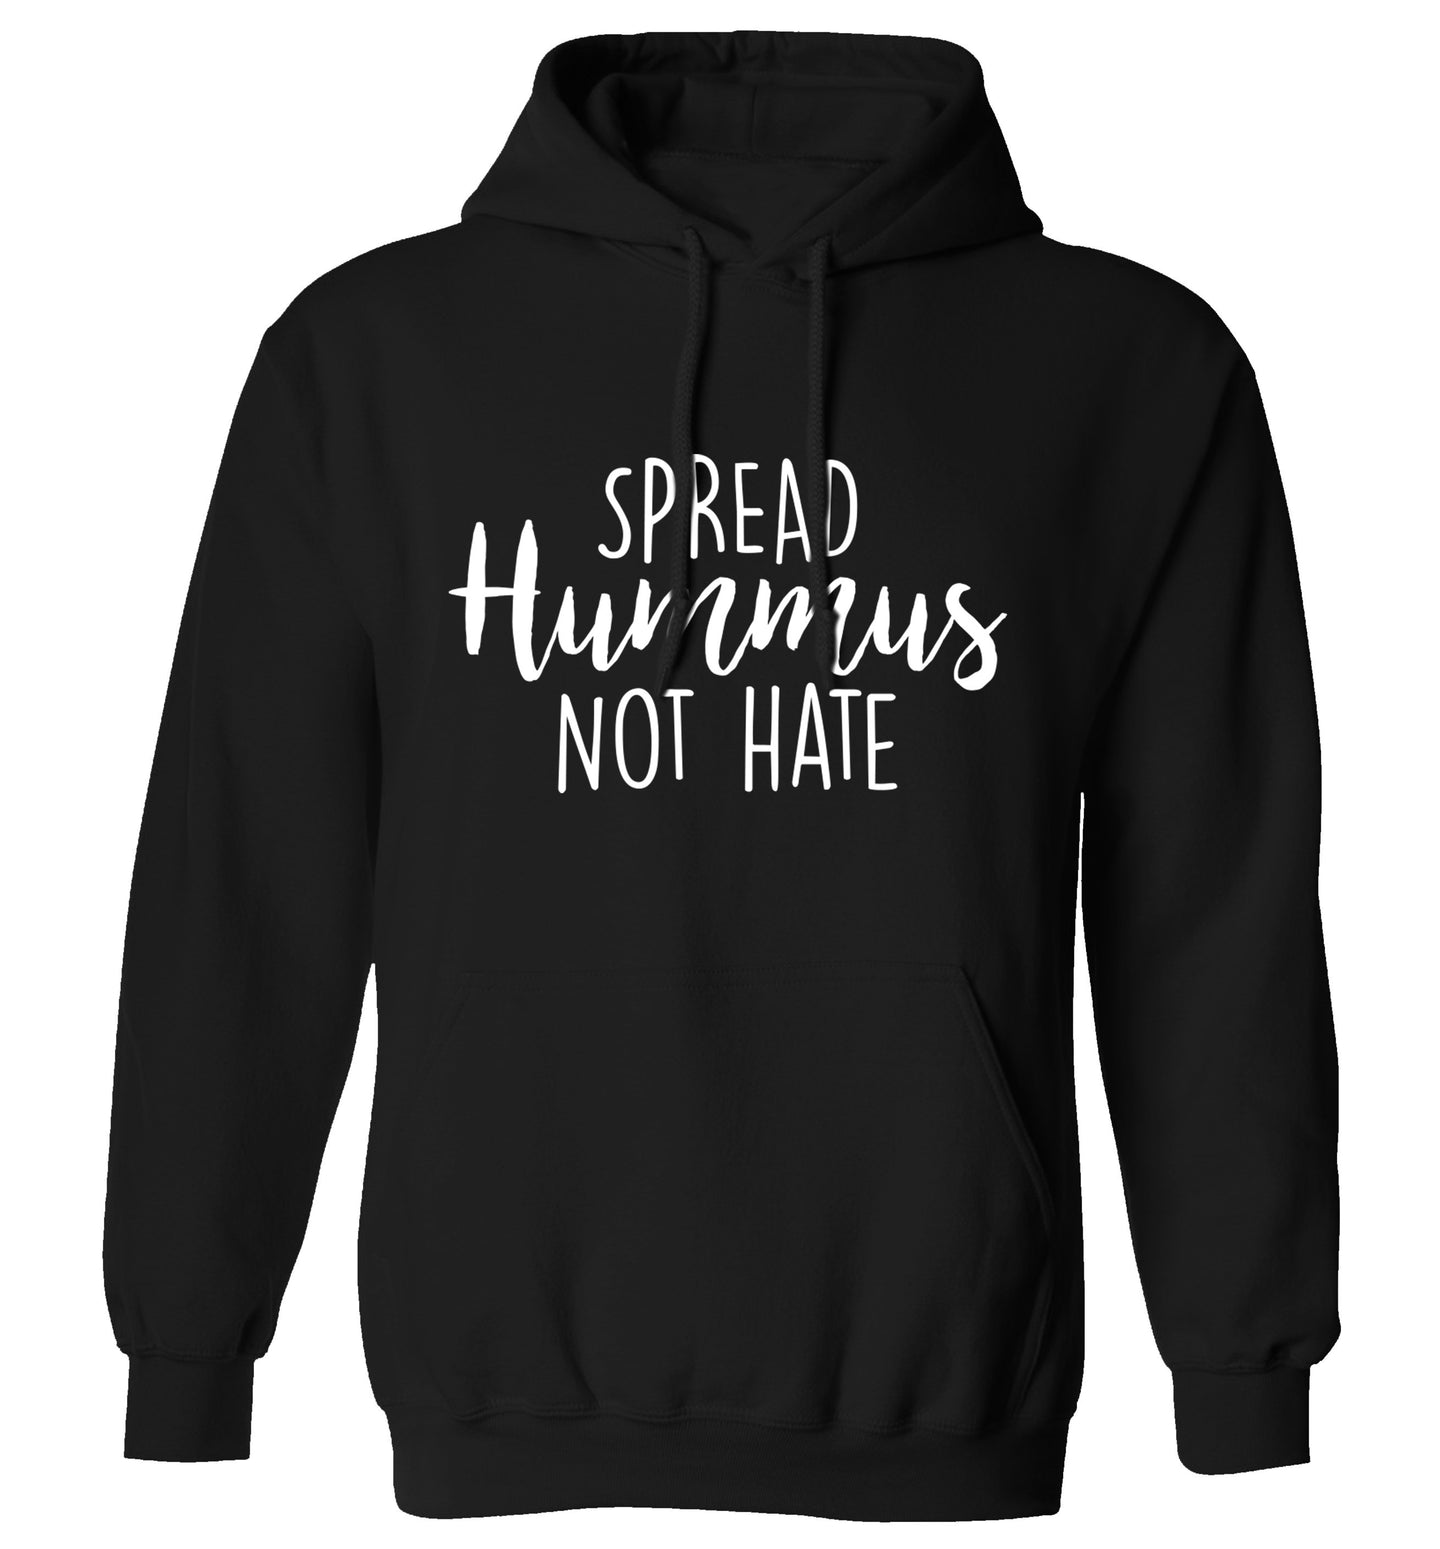 Spread hummus not hate script text adults unisex black hoodie 2XL